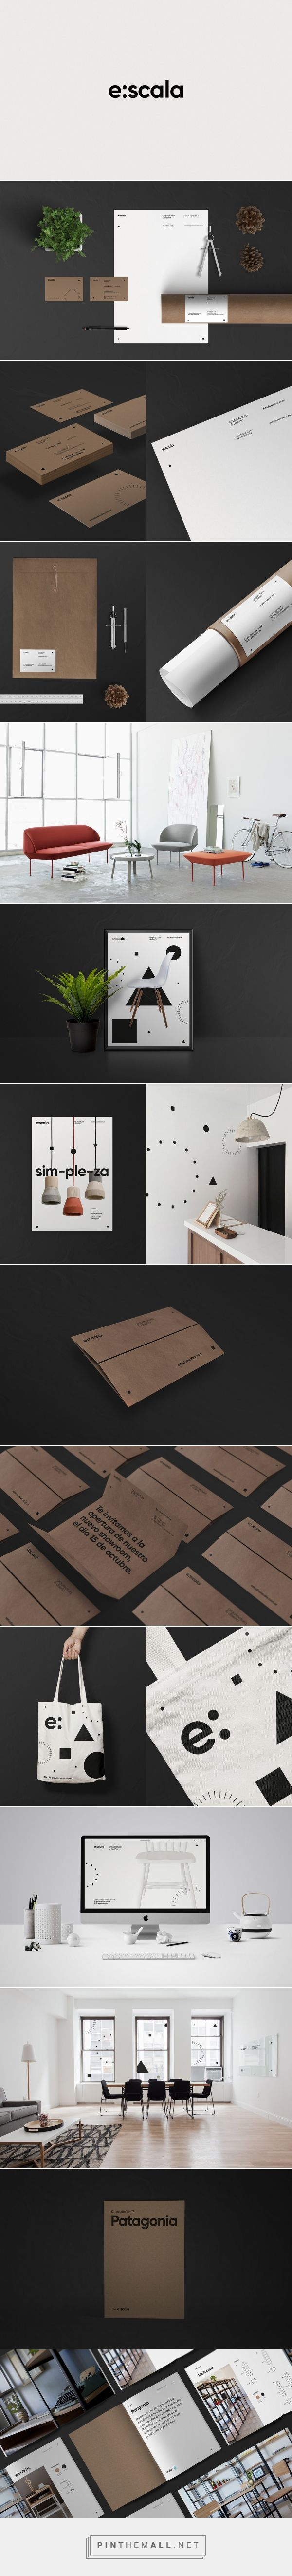 E:scala Architecture Branding by Page   Fivestar Branding Agency – Design and Branding Agency & Curated Inspiration Gallery